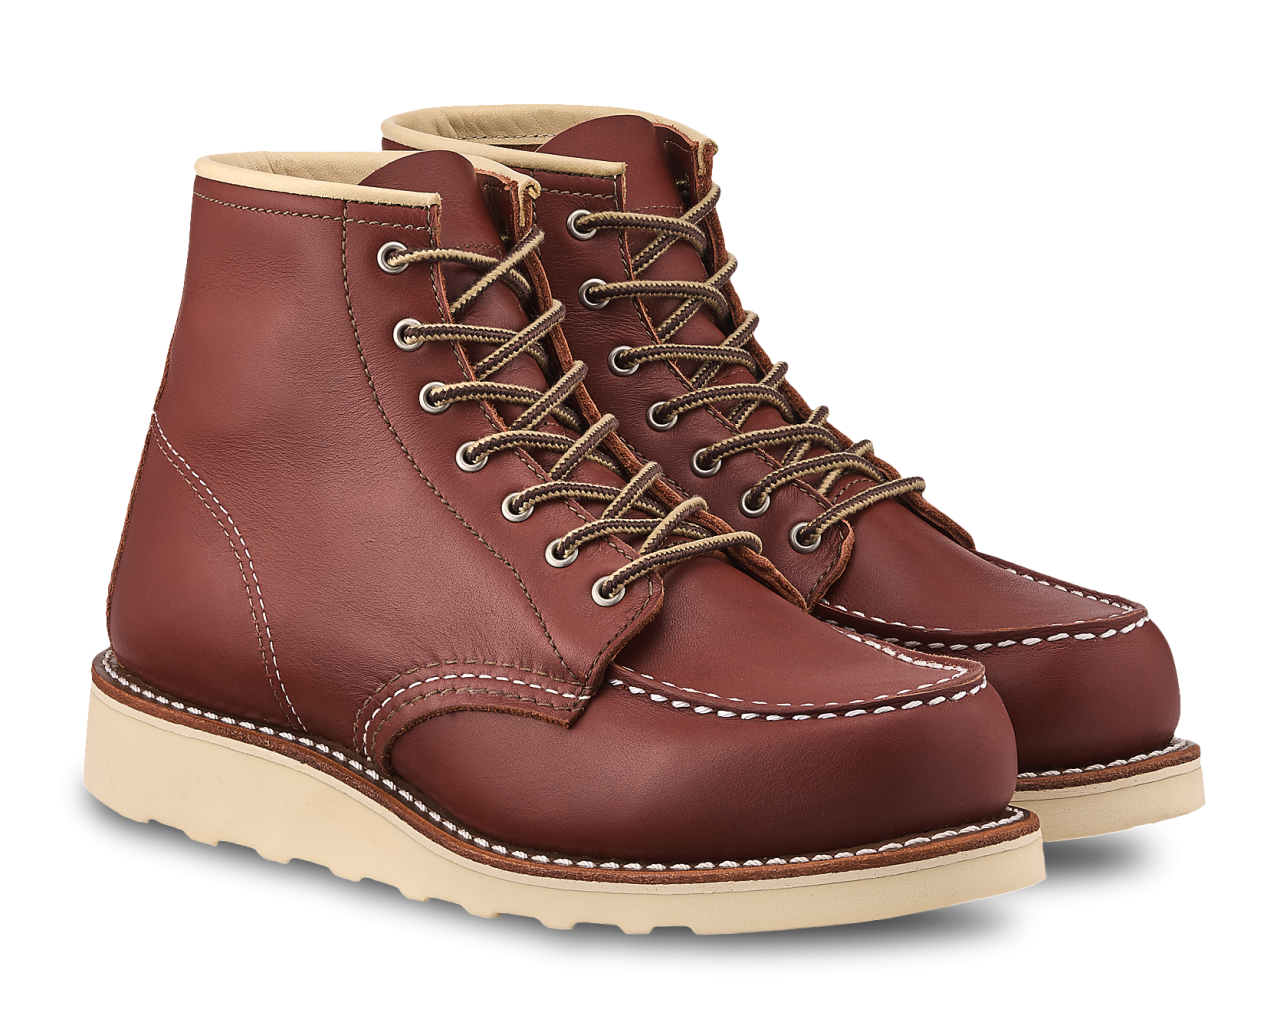 Red Wing - 3369 Moc Toe